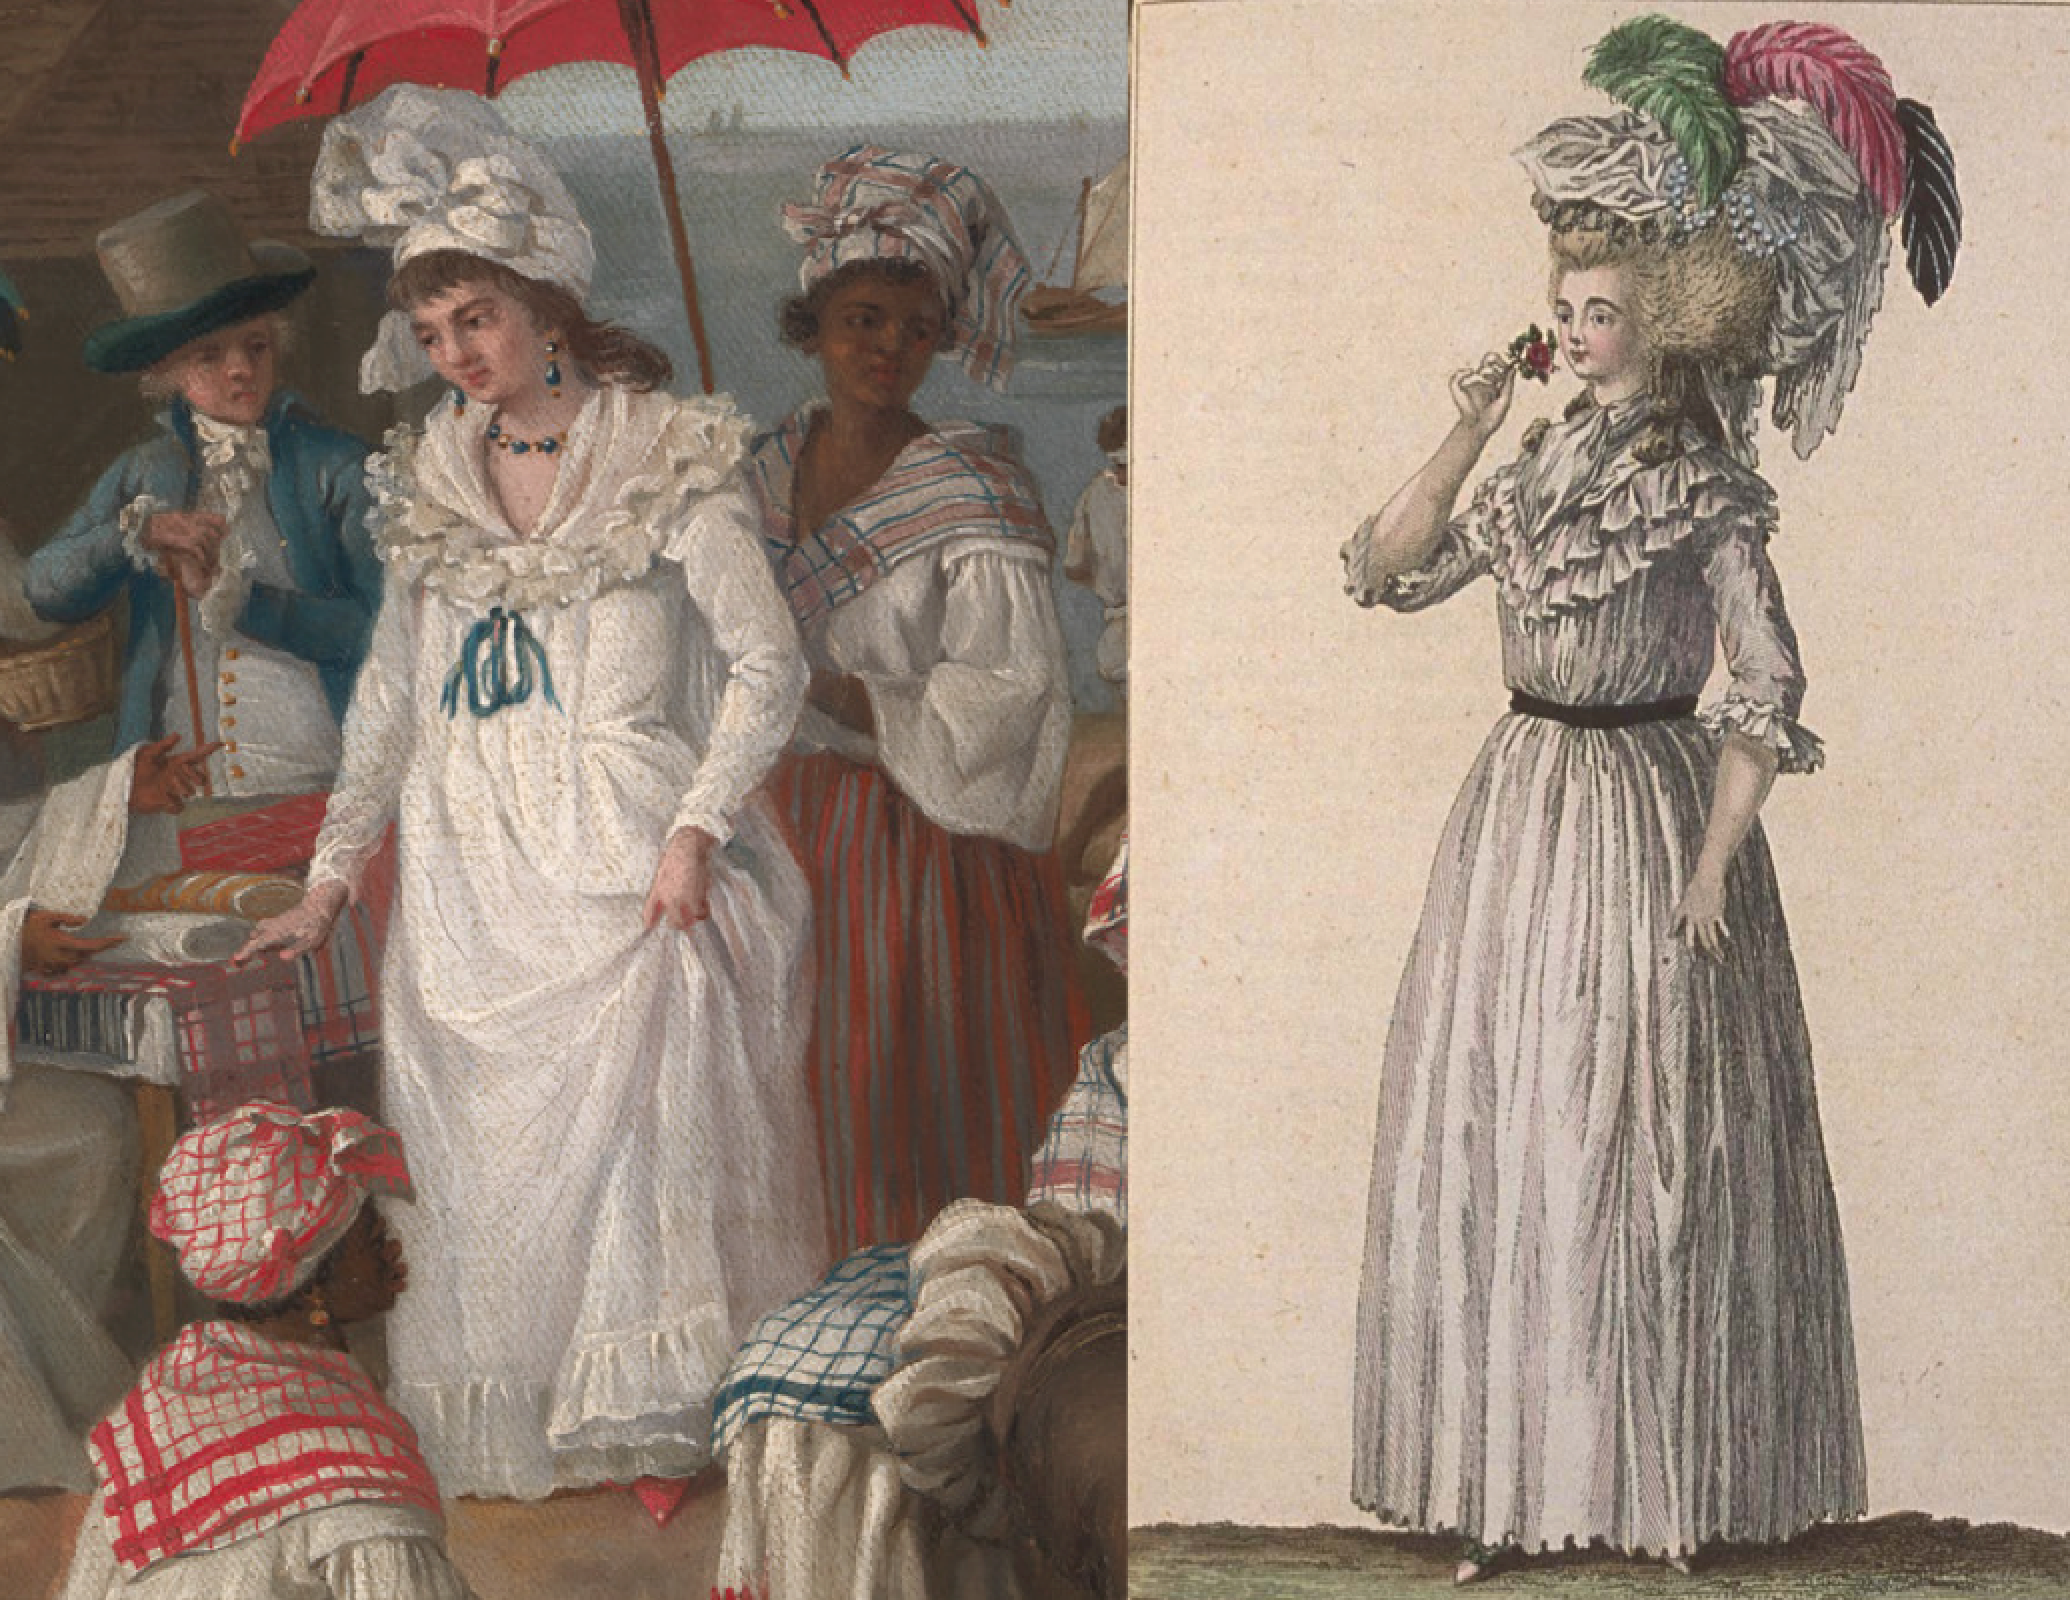 Creole Comforts And French Connections A Case Study In Caribbean Dress The Junto